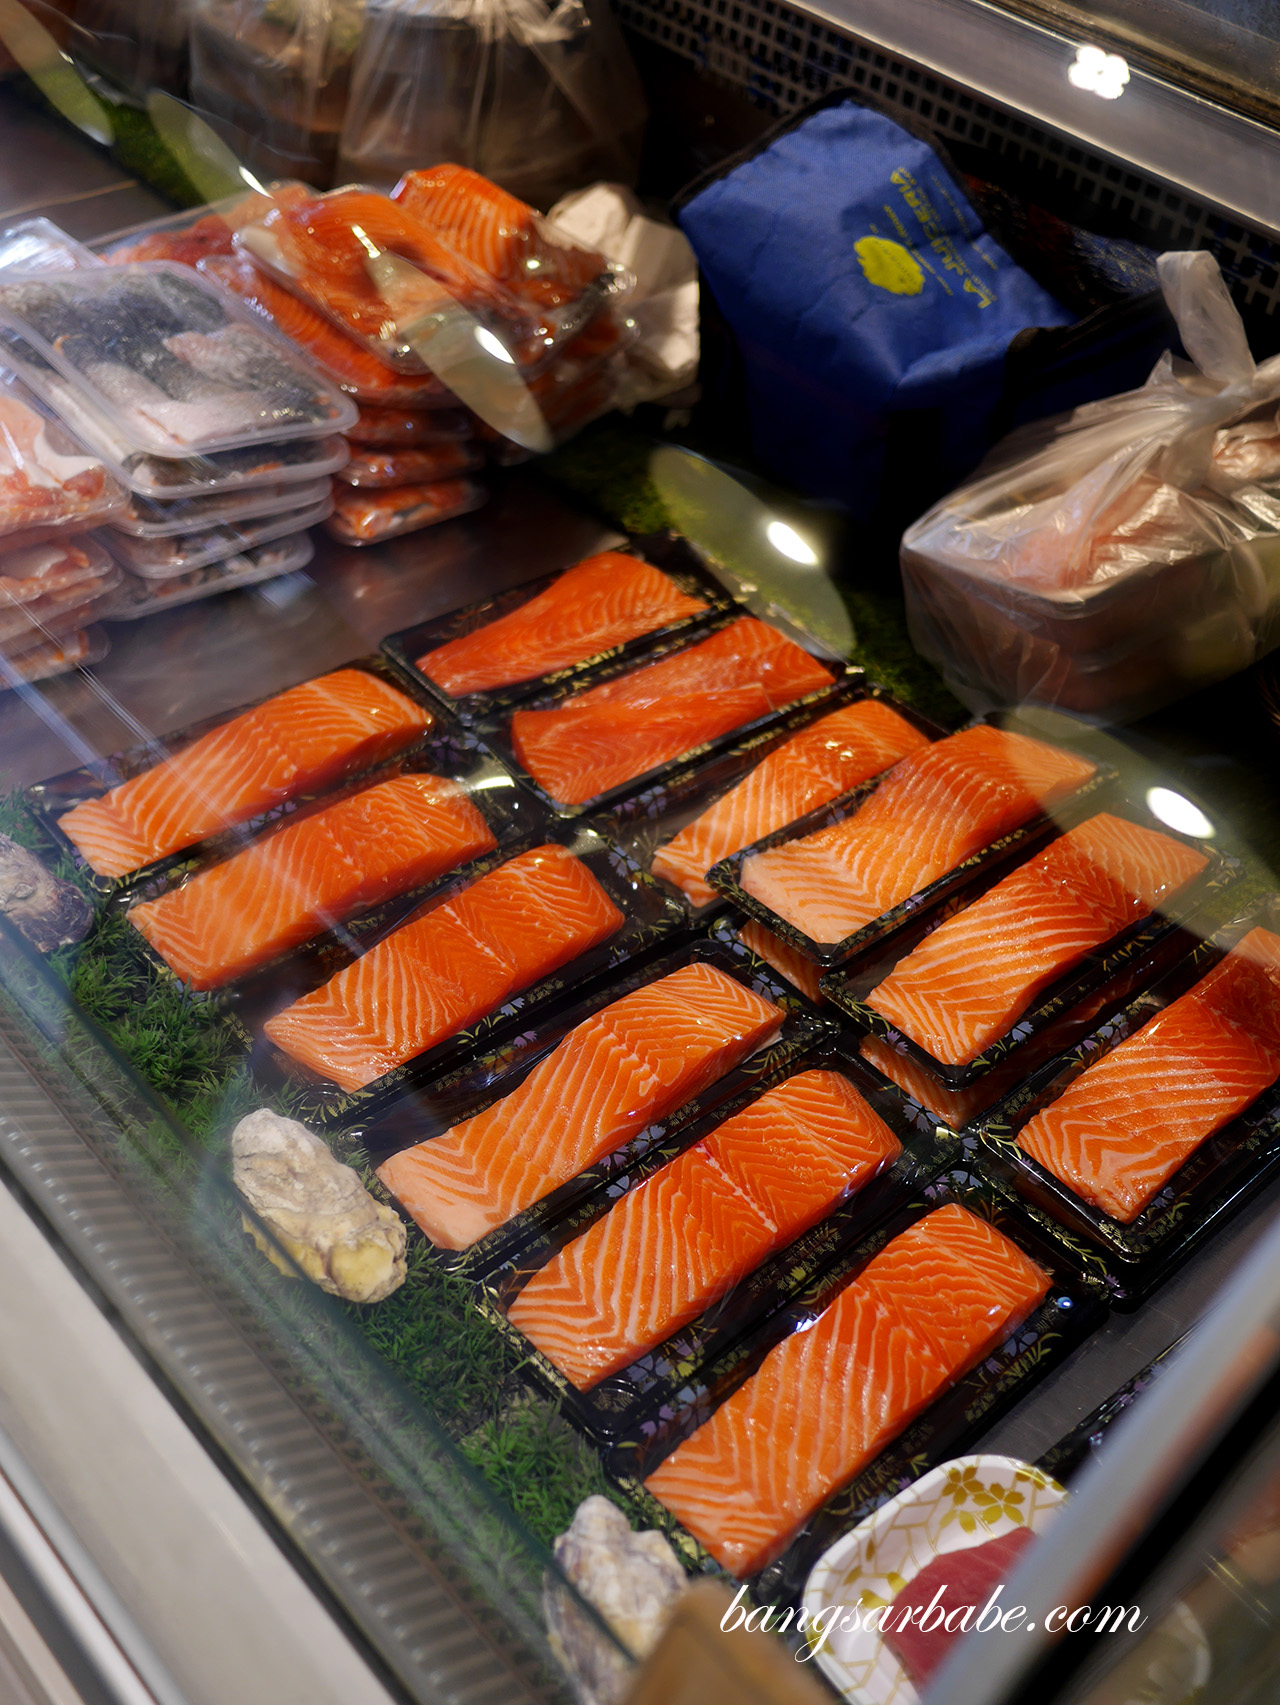 Salmon on display